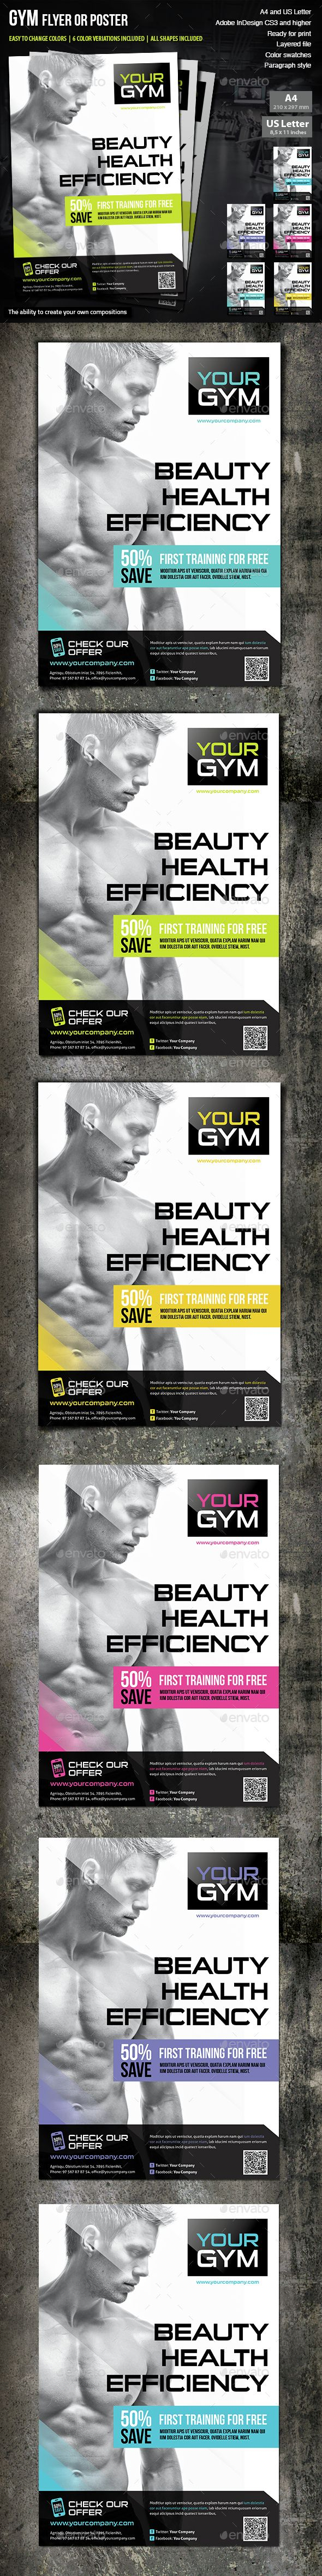 Flyer Gym | Diseño de folletos y Folletos